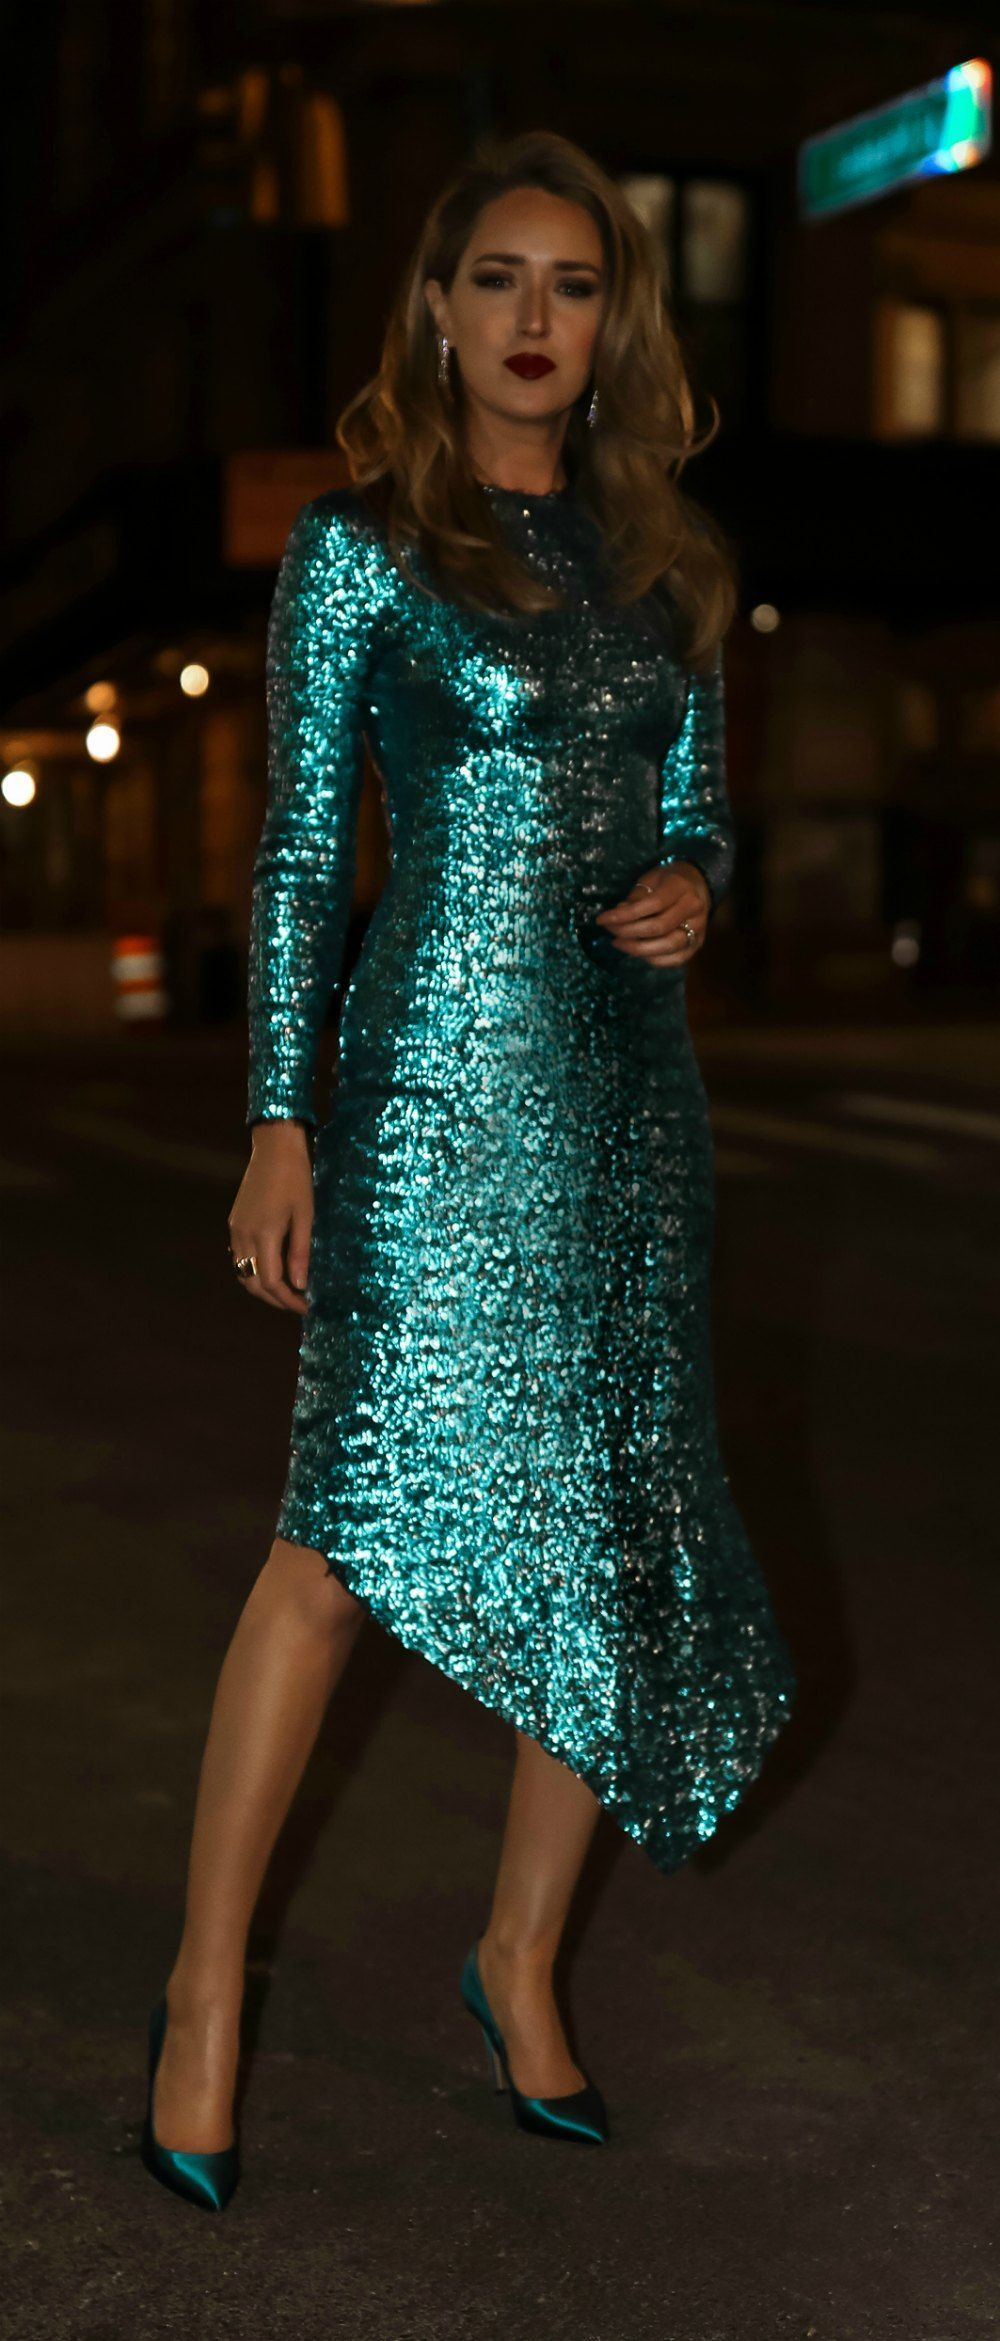 df9b108e251b7 30 Dresses in 30 Days | Day 24: New Year's Eve // Teal sequin sheath dress  with asymmetrical hem, teal suede pumps, silver diamond drop  earrings{Thornton ...